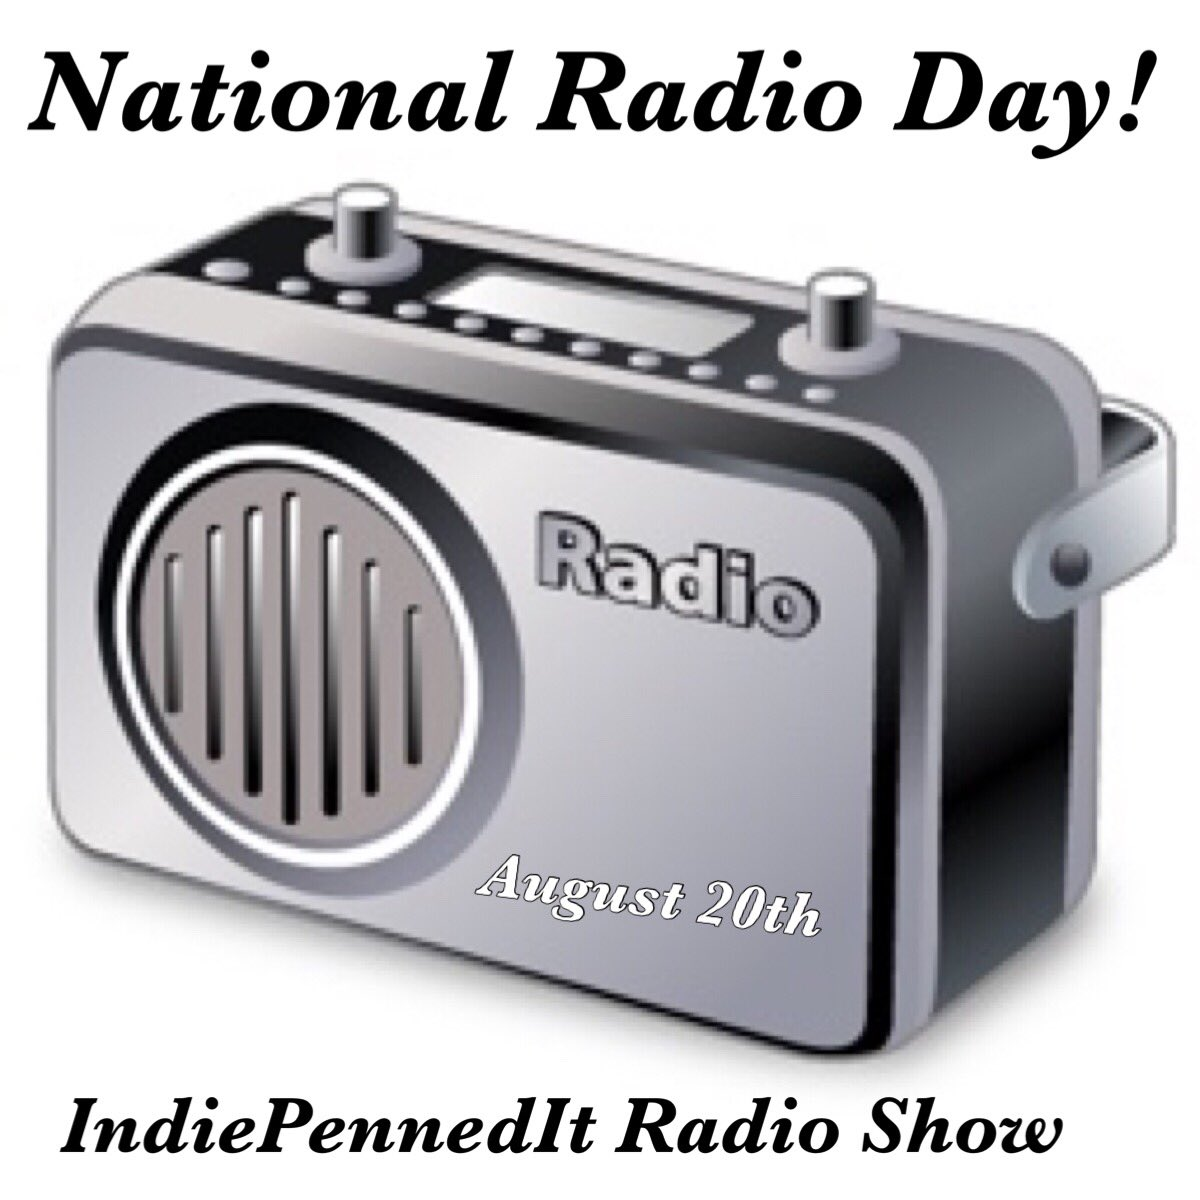 It's National Radio Day! Celebrate by tuning in to the IndiePennedIt Radio Show tonight on @nuubeatradio.   http://www. nuubeatradio.com     #nuubeatradio #indiepenneditradioshow #indiemusic #indiepenneditradio #nationalradioday #indieradio #internetradio #internetradioshow<br>http://pic.twitter.com/pnY71jD75U